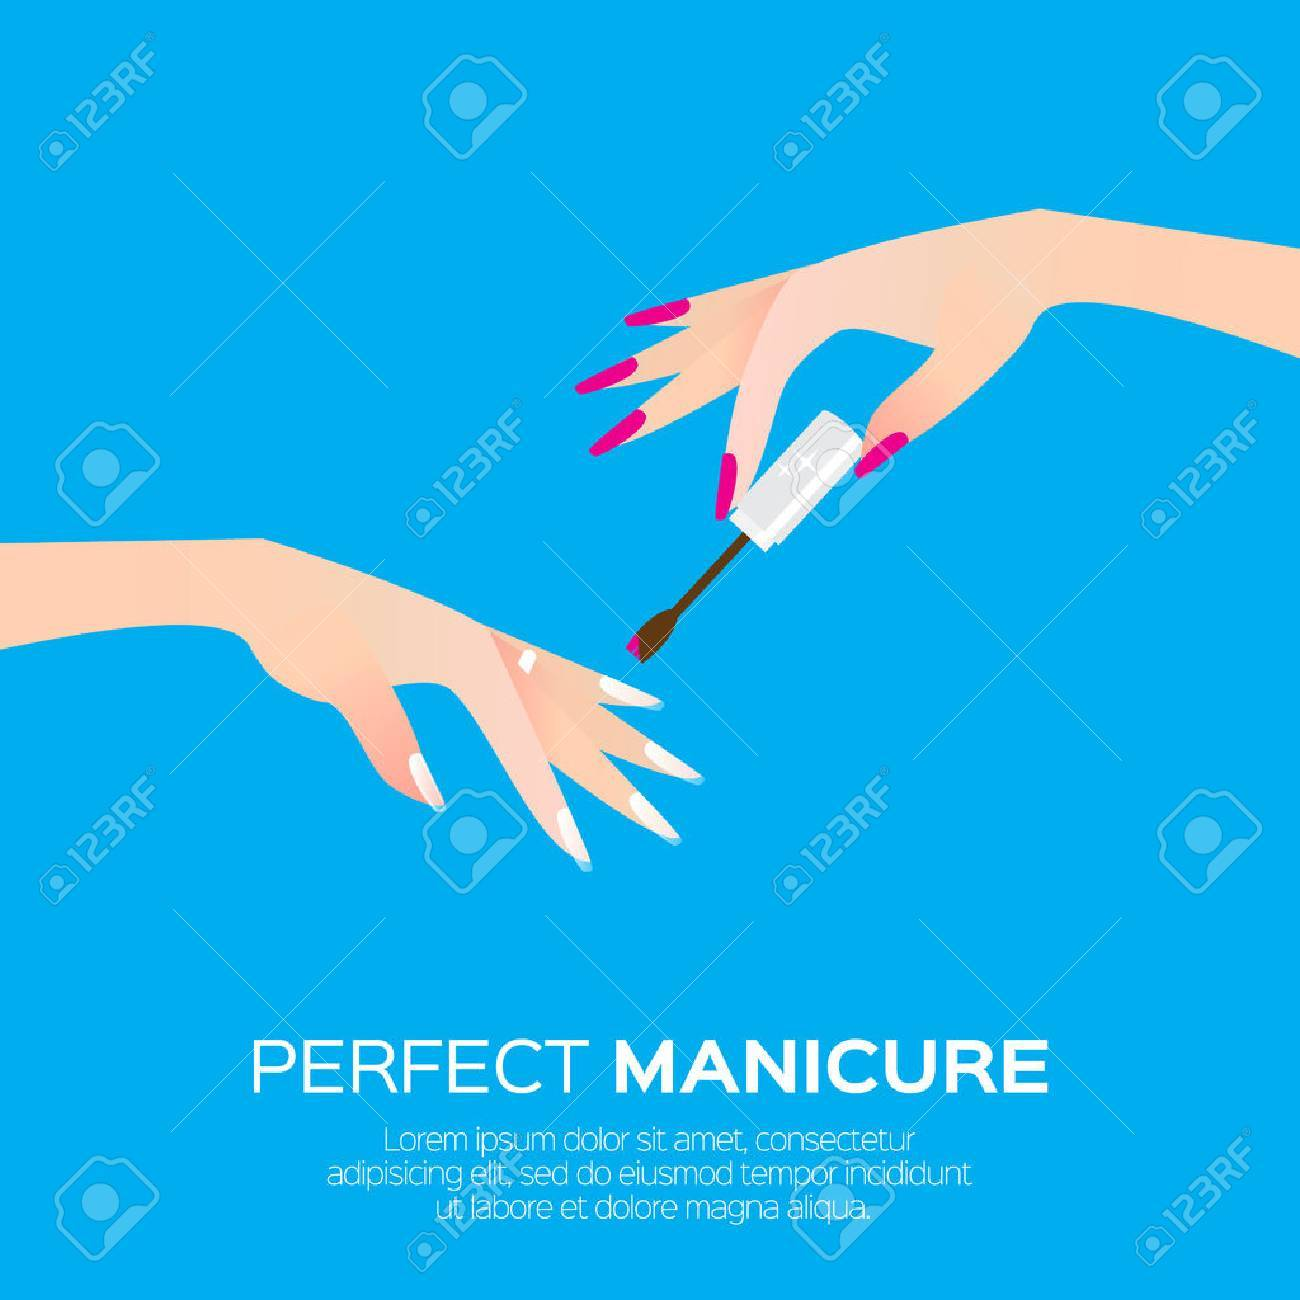 Nail art and elegant women's hand. Salon cosmetic concept. Beauty product. Nail health banner. Nail design polish, manicure tools. Vector illustration on blue background - 60221953